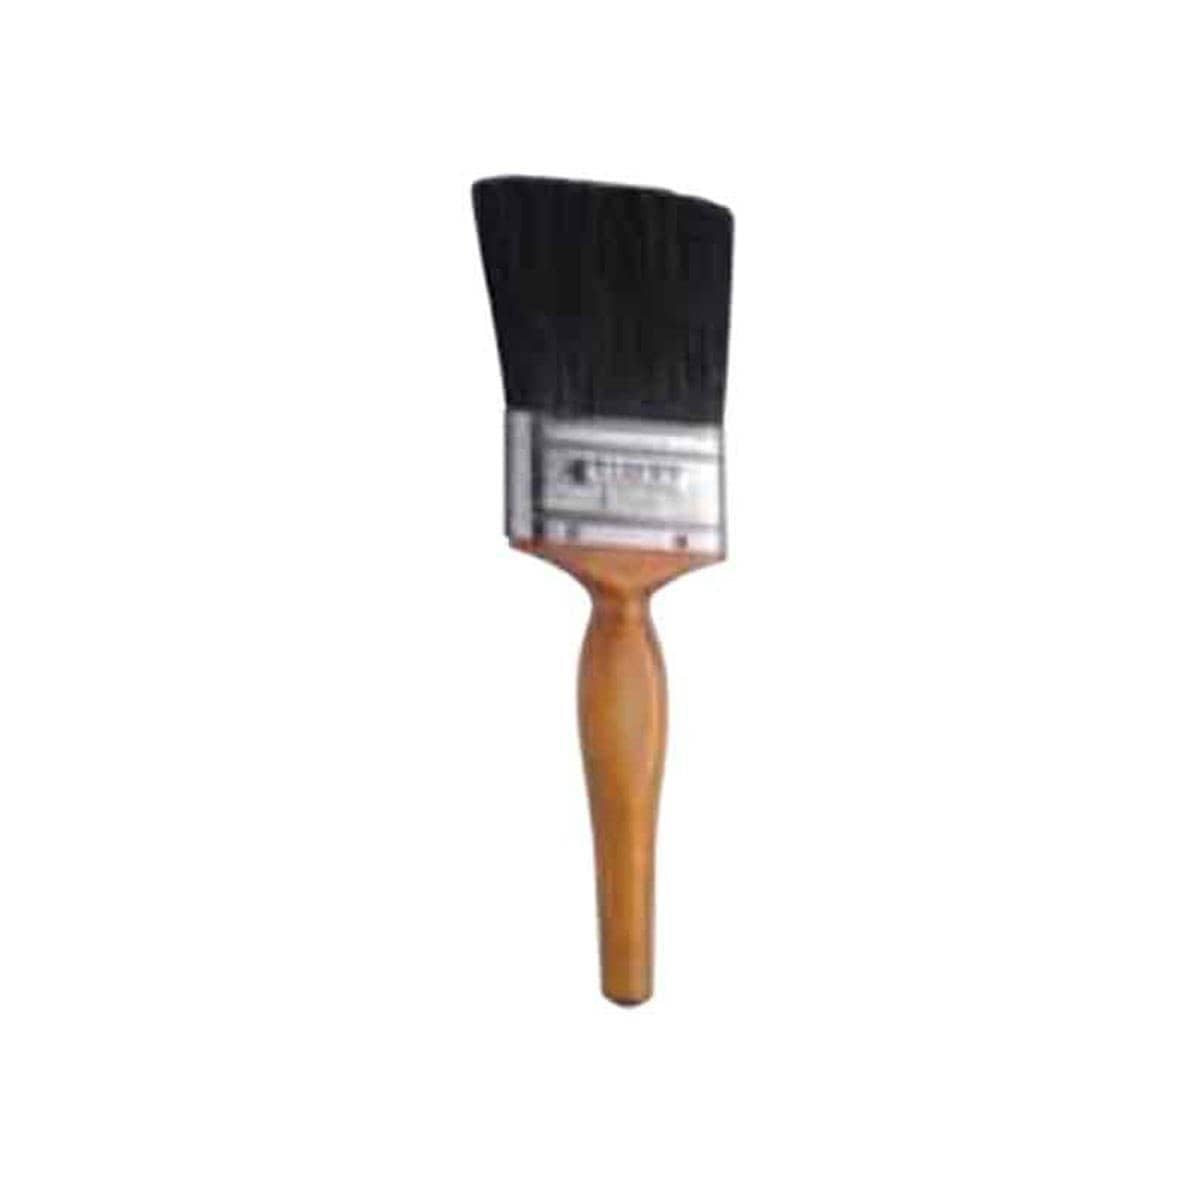 STANLEY AllMaster Paint Brush 1in 25mm (29-031-1)